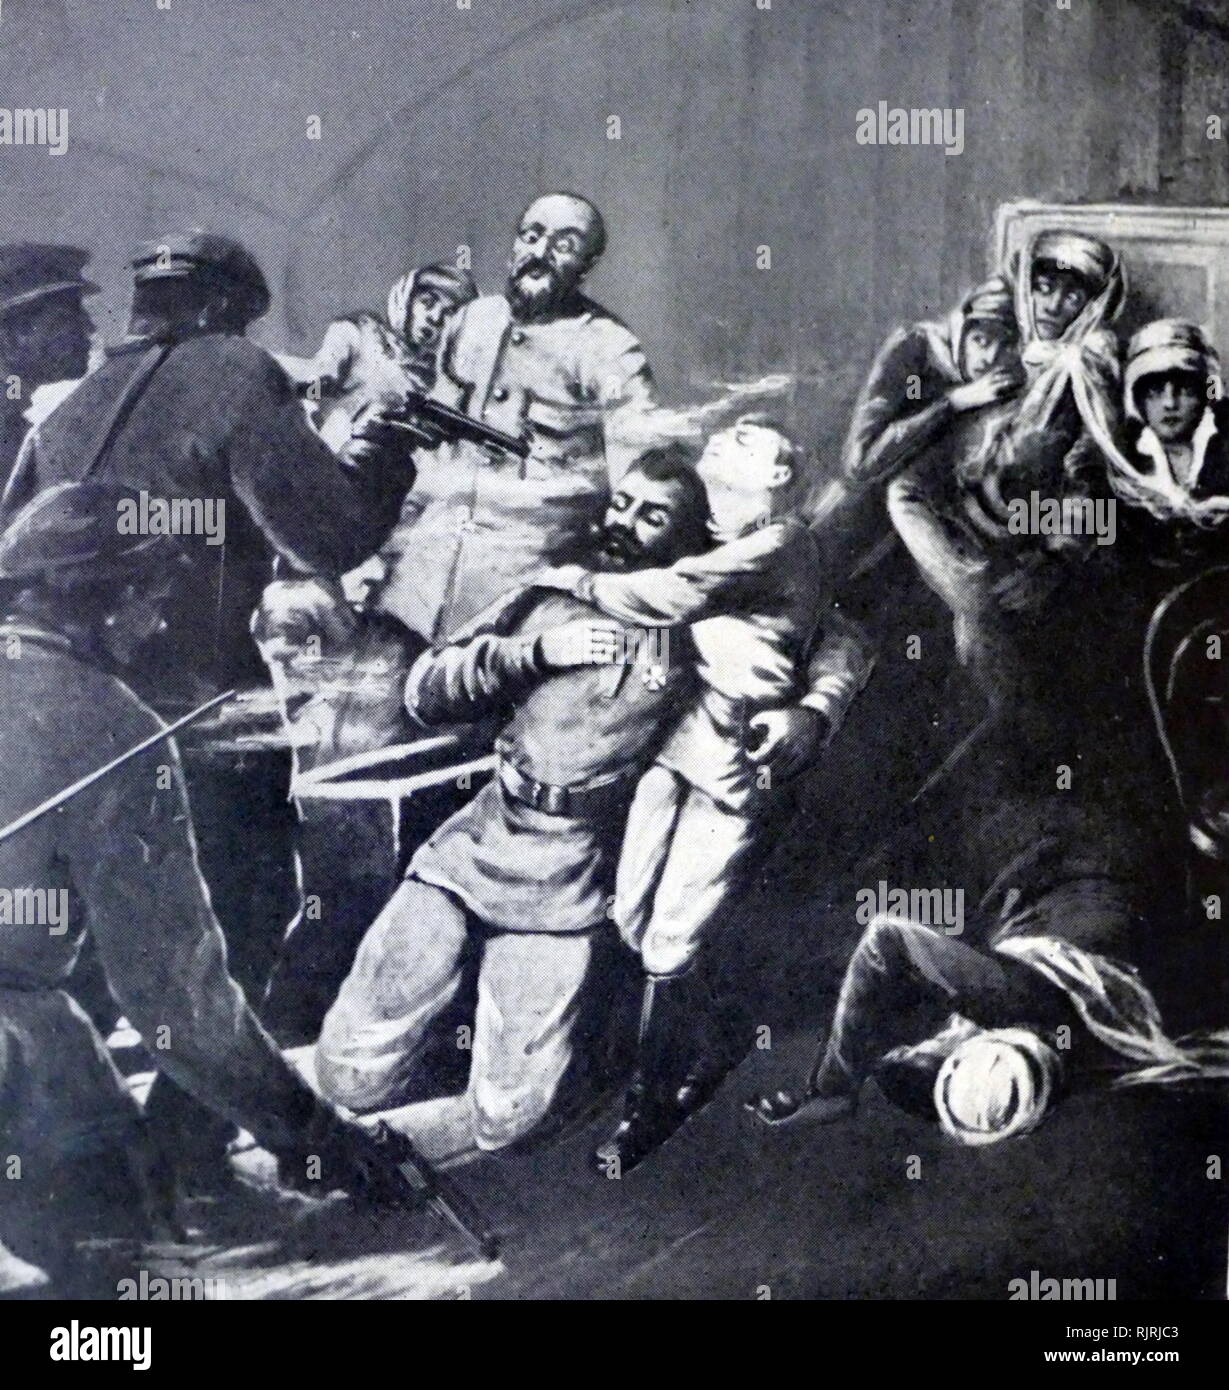 Artist impression of the murder of the Russian Imperial Romanov family (Tsar Nicholas II, his wife Tsarina Alexandra and their five children Olga, Tatiana, Maria, Anastasia, and Alexei) and all those who chose to accompany them into imprisonment--notably Eugene Botkin, Anna Demidova, Alexei Trupp and Ivan Kharitonov--were shot, bayoneted and clubbed to death[1] in Yekaterinburg on the night of 16-17 July 1918. The Tsar and his family were killed by several Bolshevik troops including Peter Ermakov, and led by Yakov Yurovsky under the orders of the Ural Regional Soviet and according to instructi - Stock Image